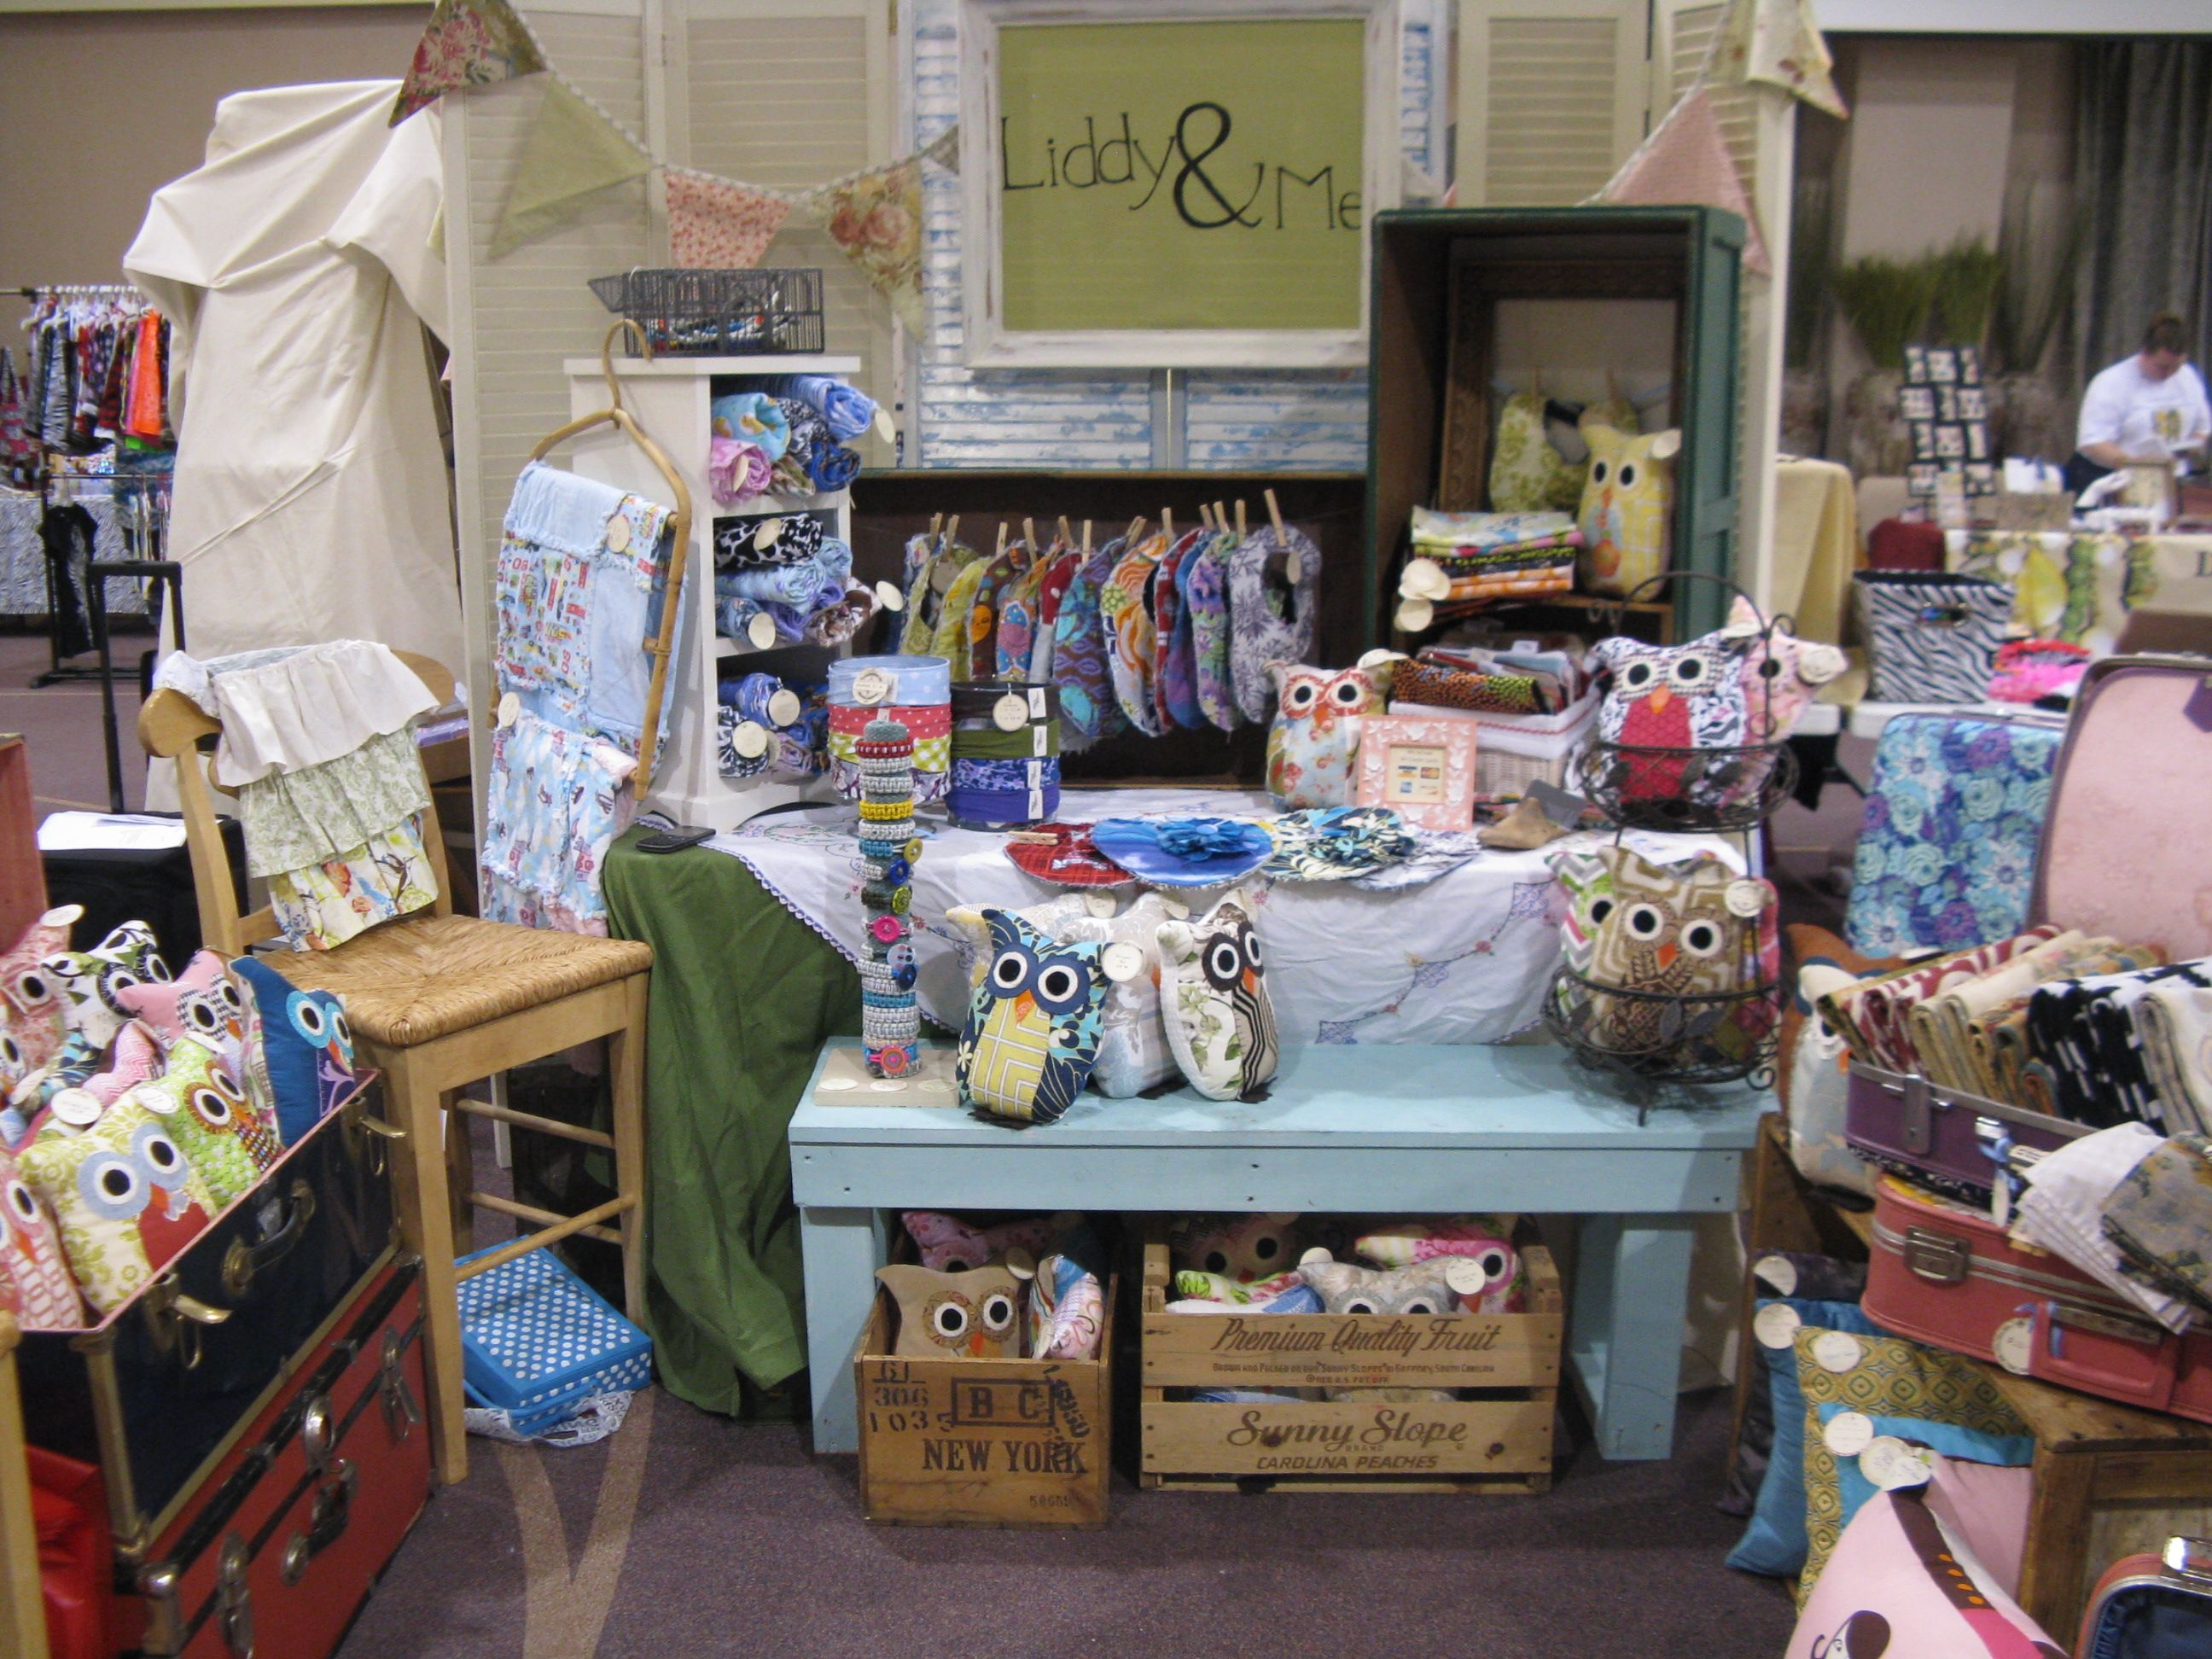 my jenks church craft show booth cute display ideas. Black Bedroom Furniture Sets. Home Design Ideas